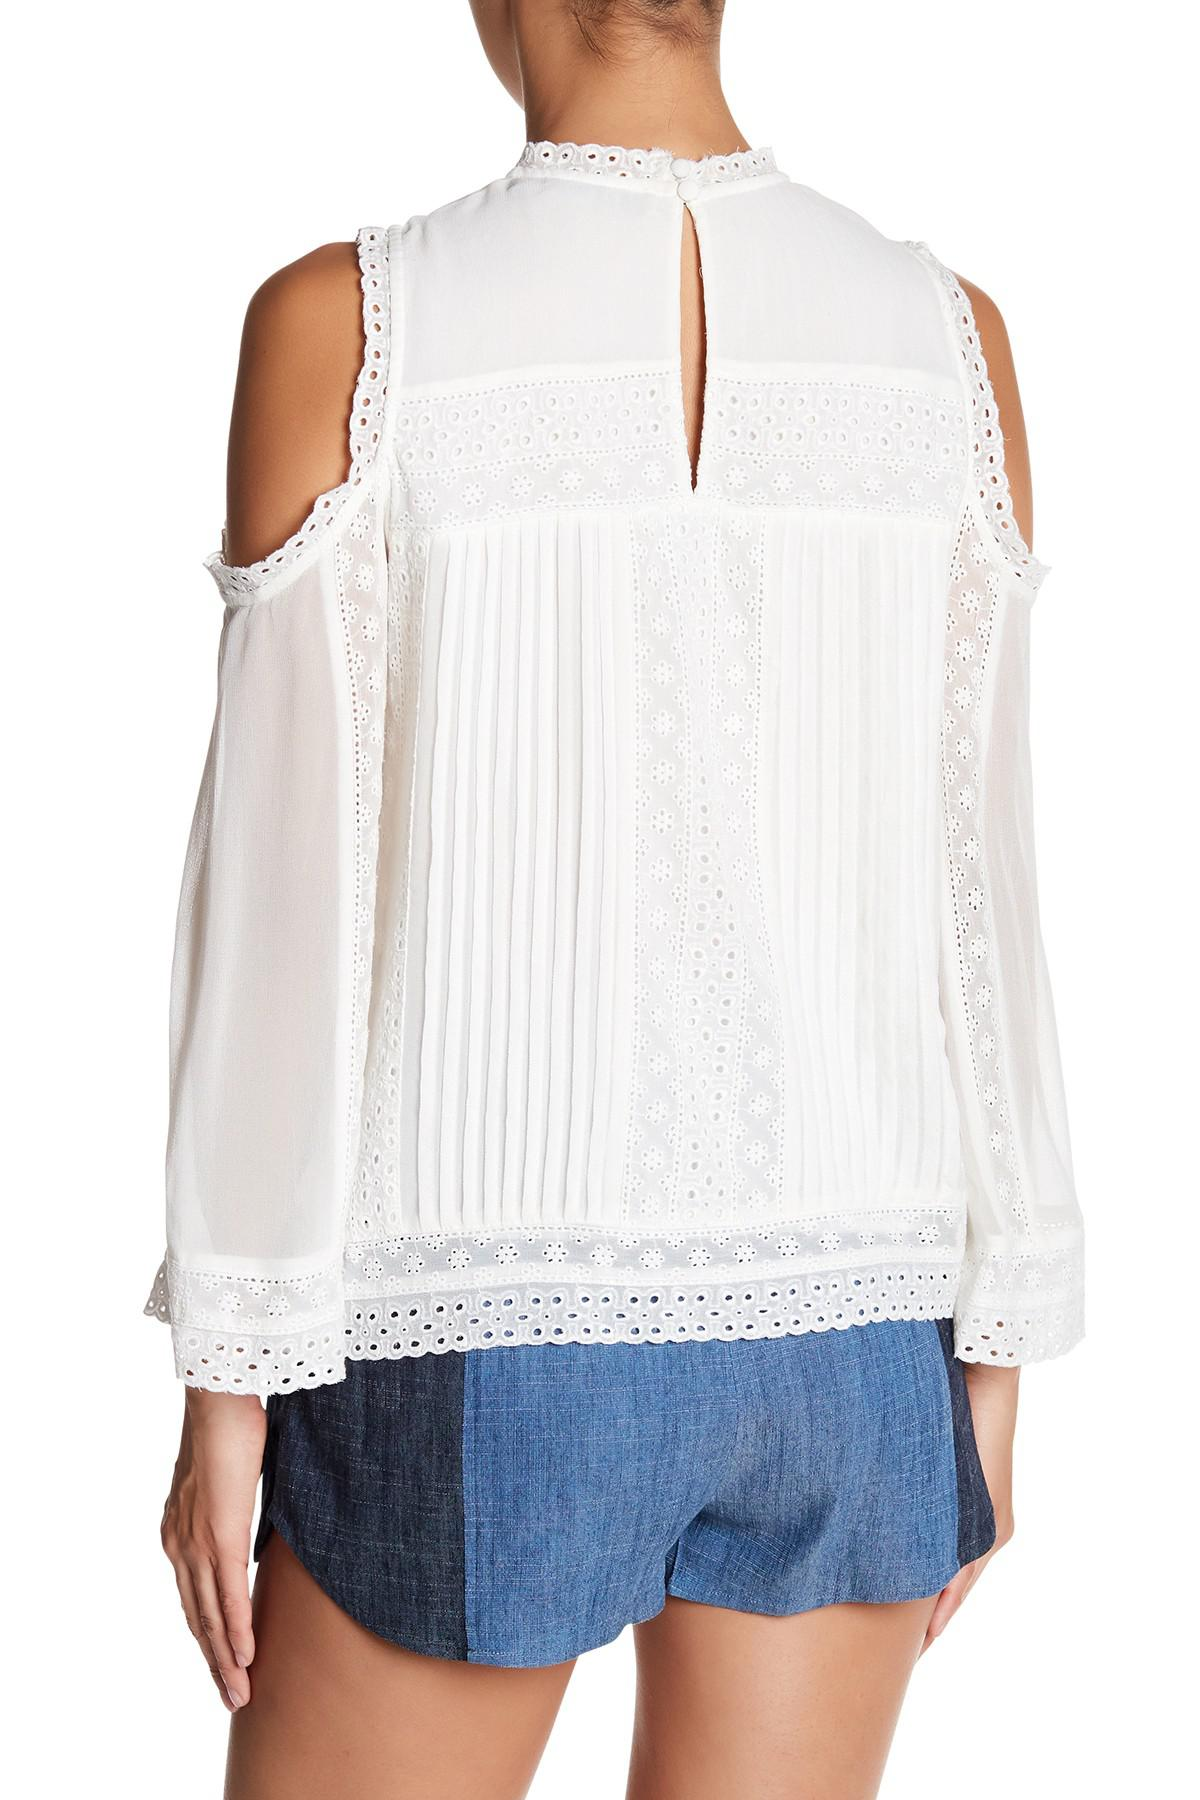 ed2bf5d7c2854 Lyst - Alice + Olivia Ofelia Embroidered Cold Shoulder Blouse in White